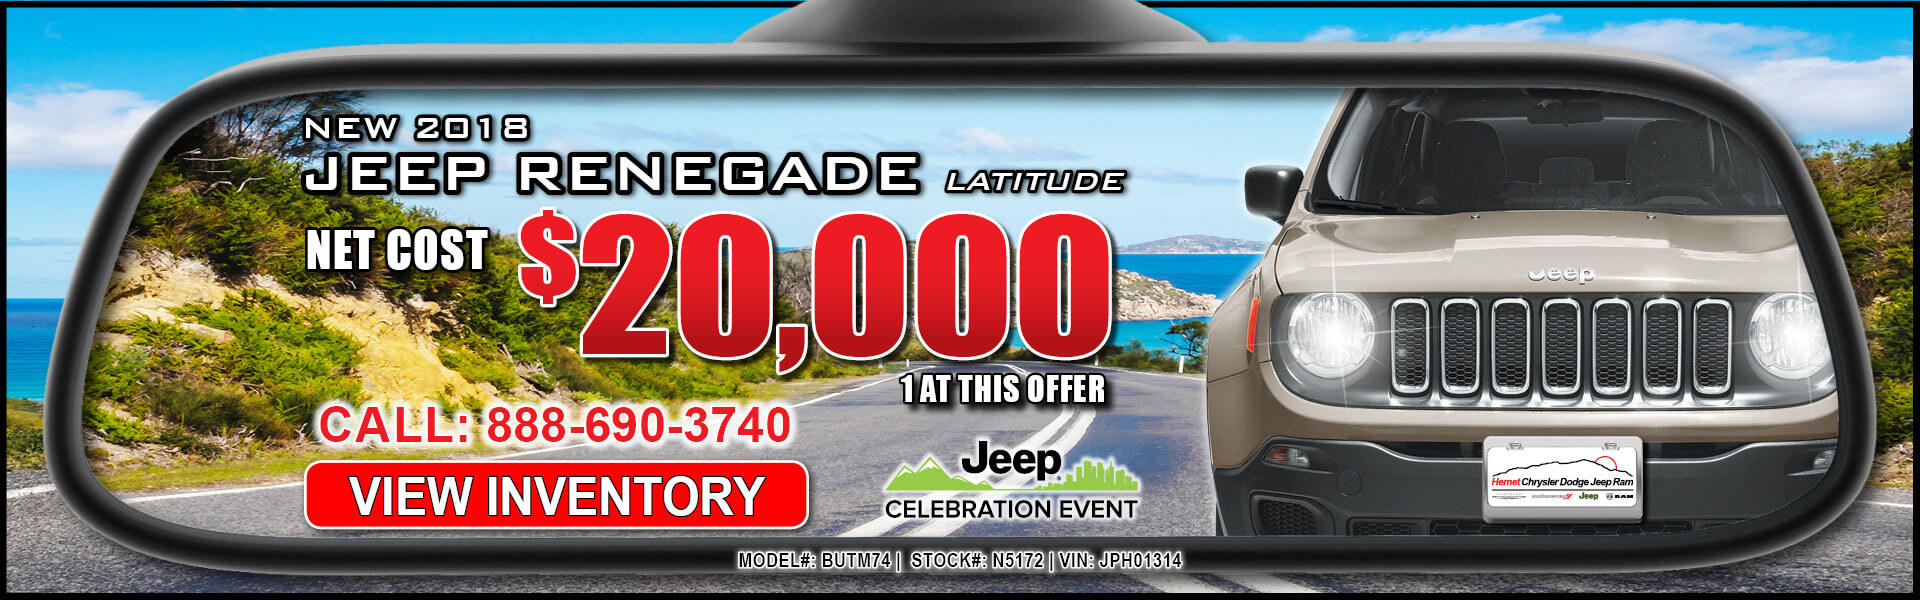 Jeep Renegade $20,000